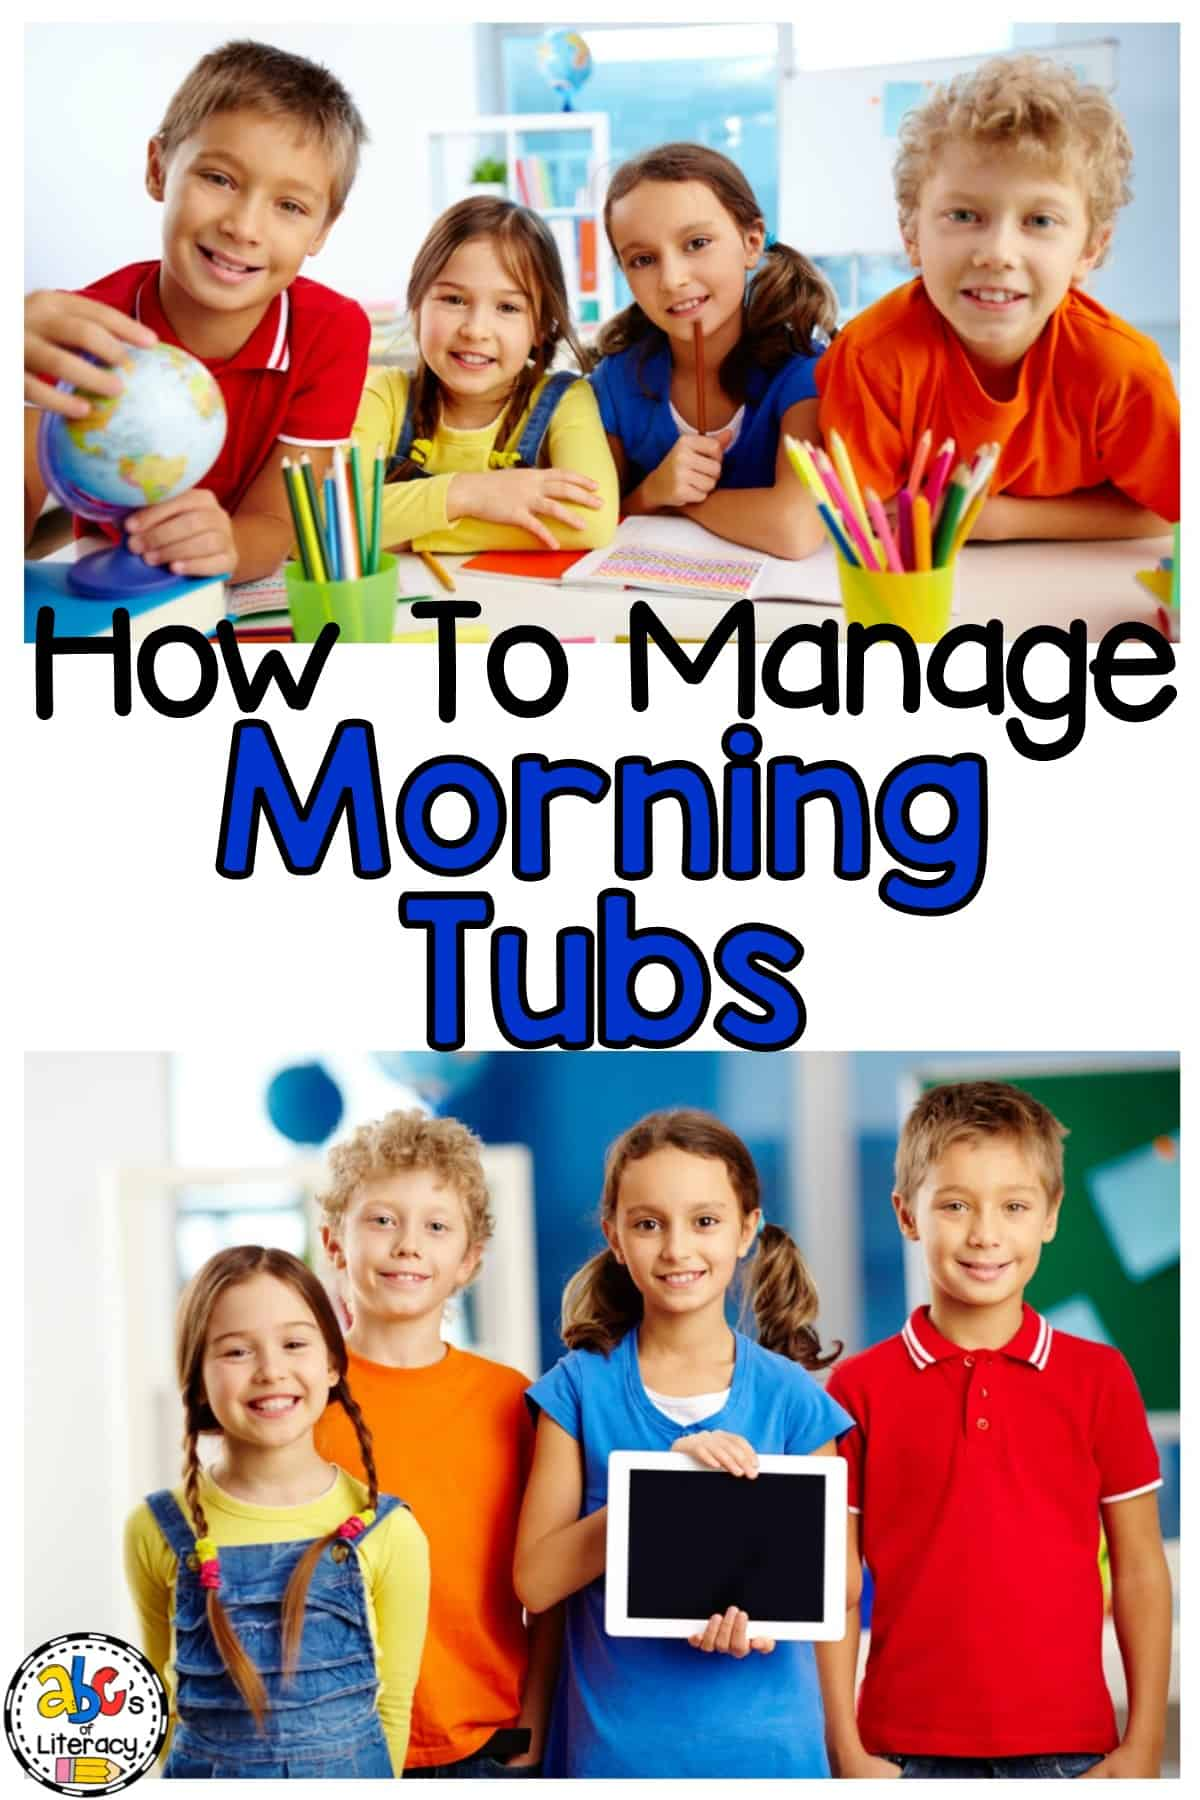 Morning Tub Management, How To Manage Morning Tubs